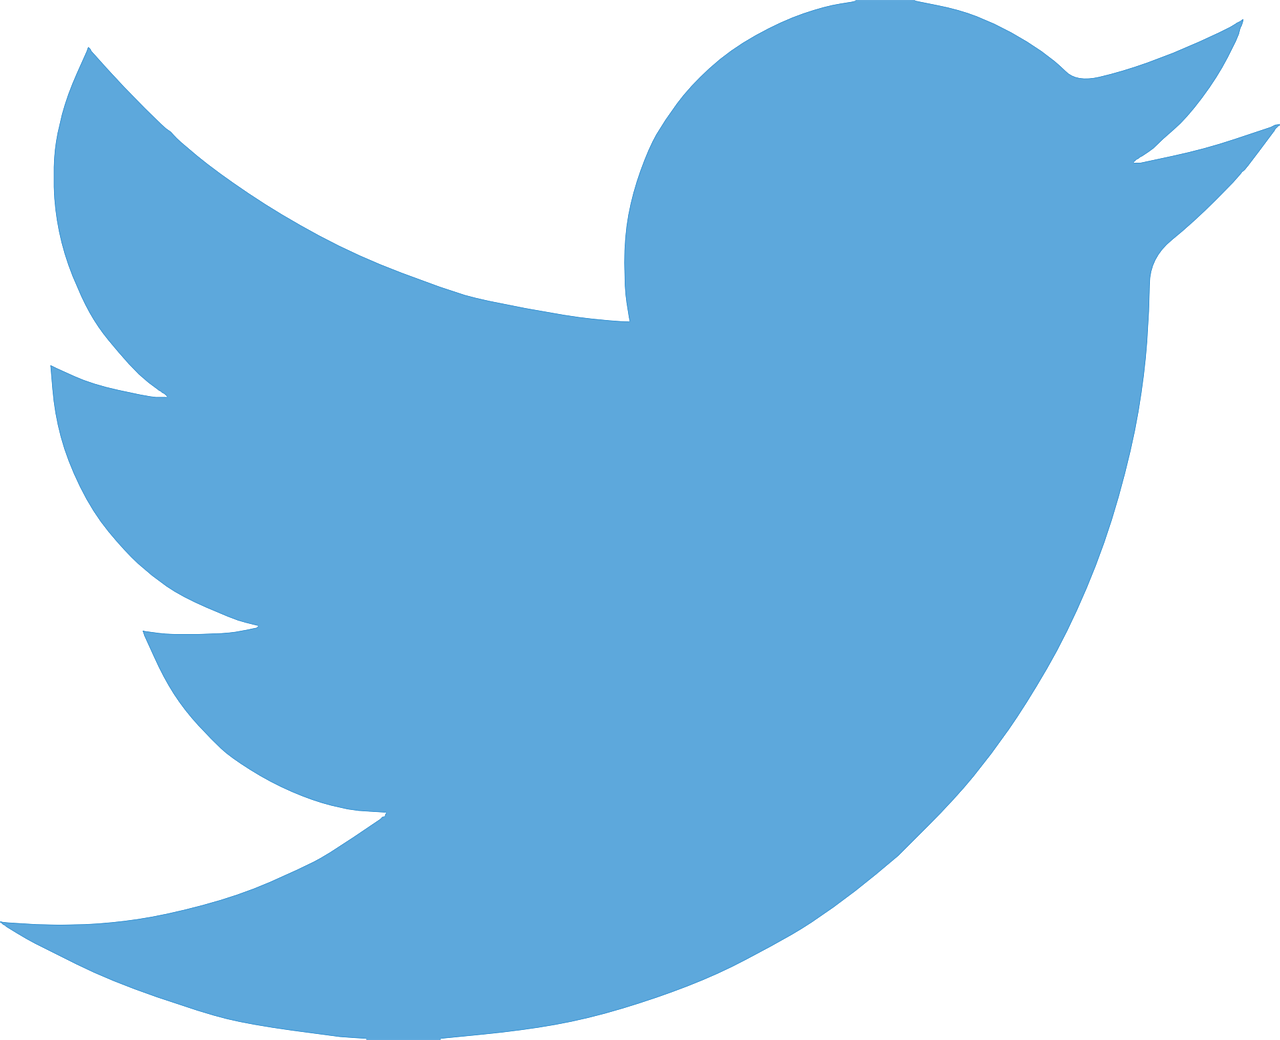 Twitter logo of blue bird